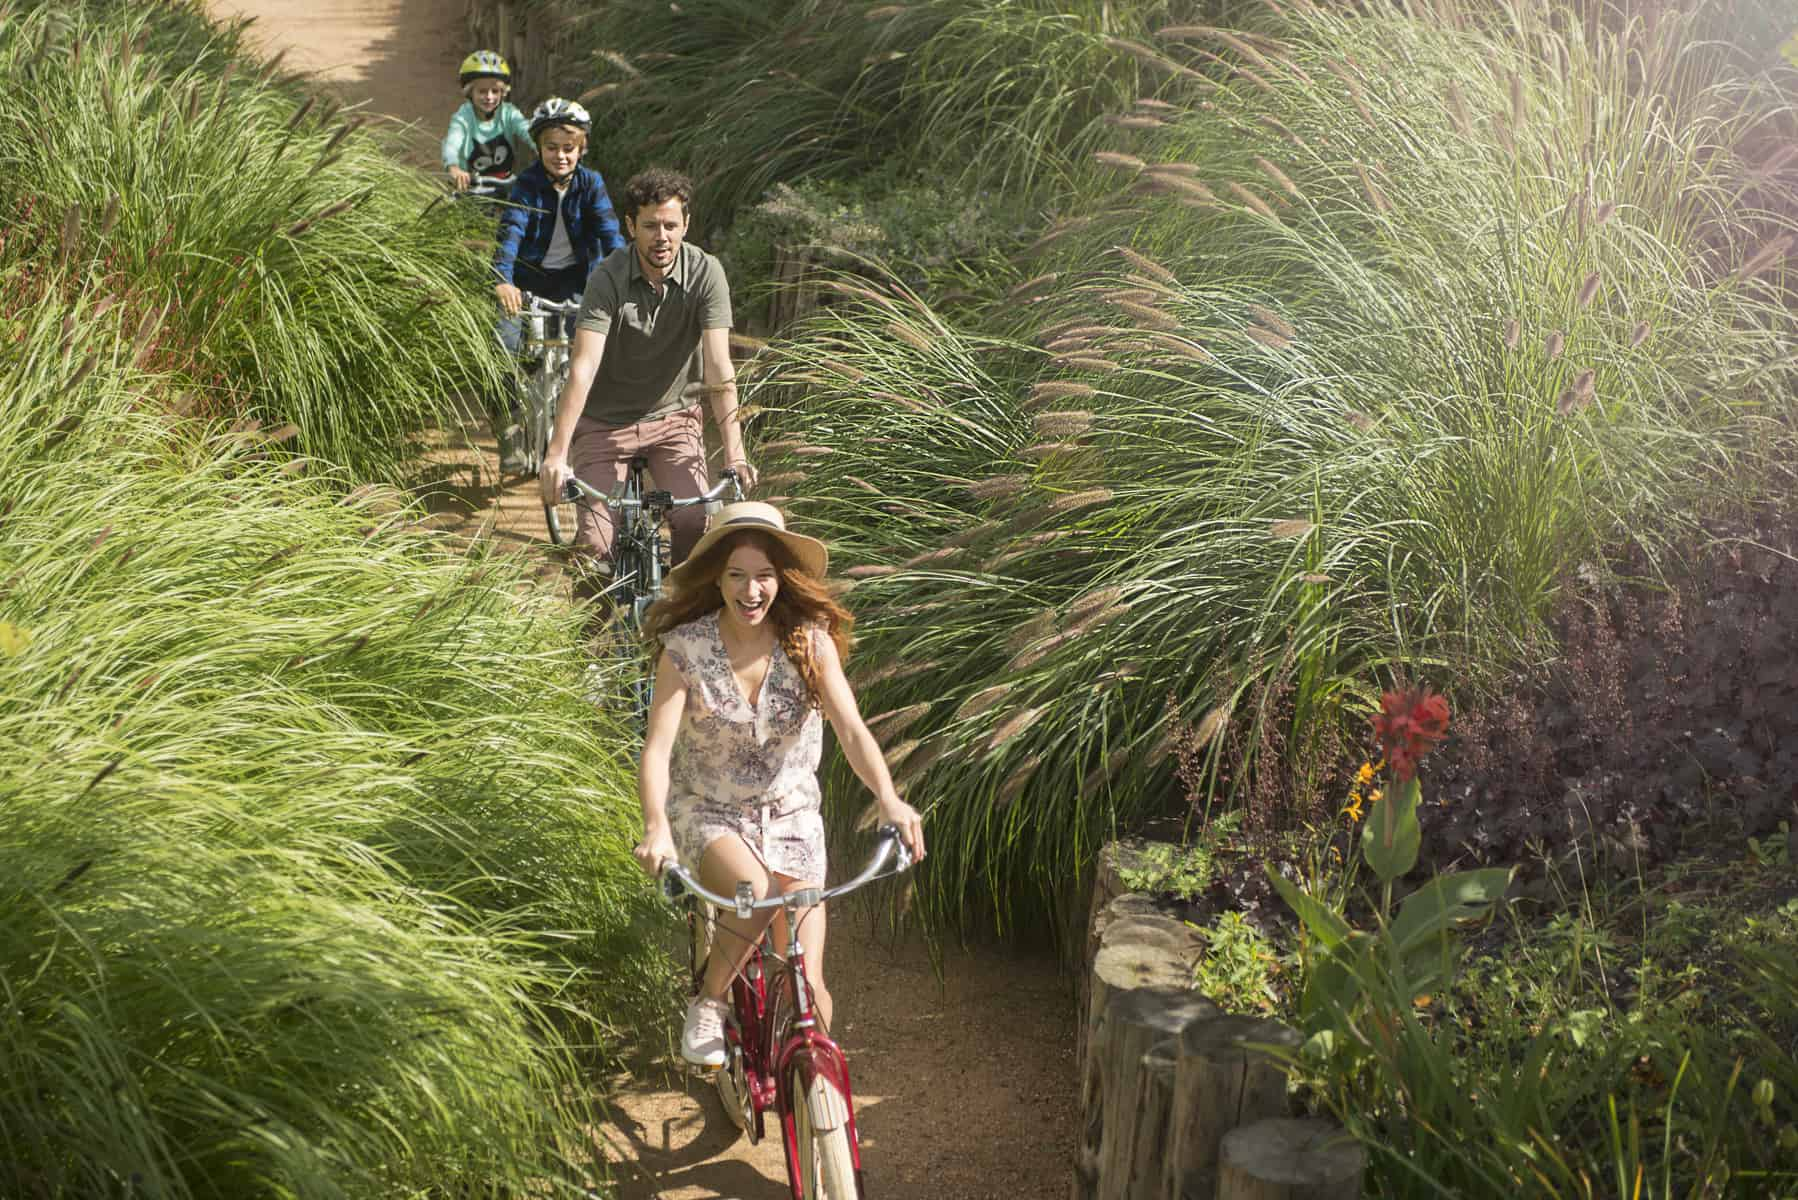 People cycling up a path surrounded by tall grasses